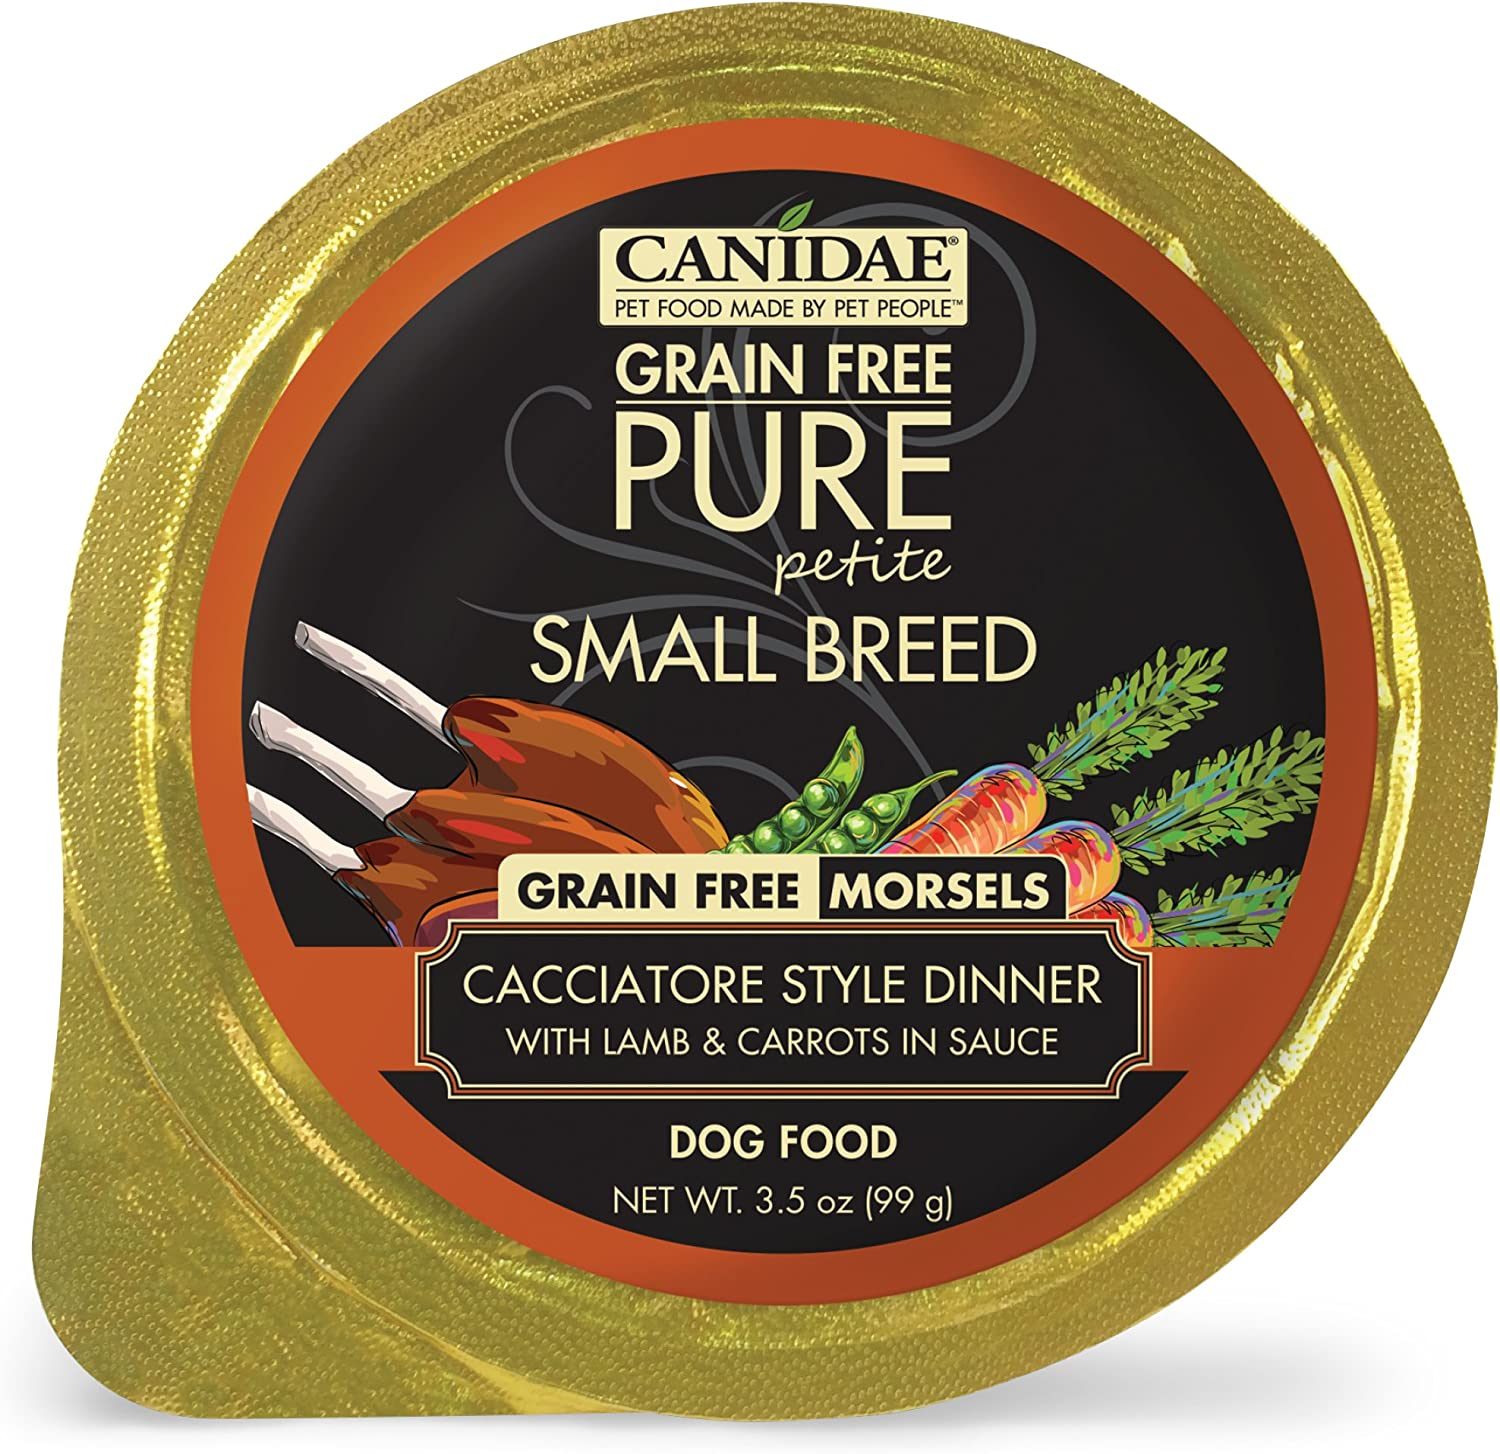 Canidae Pure Petite Small Breed Dog Cup Morsels with Lamb & Carreds (12 Pack), 3.5 Oz